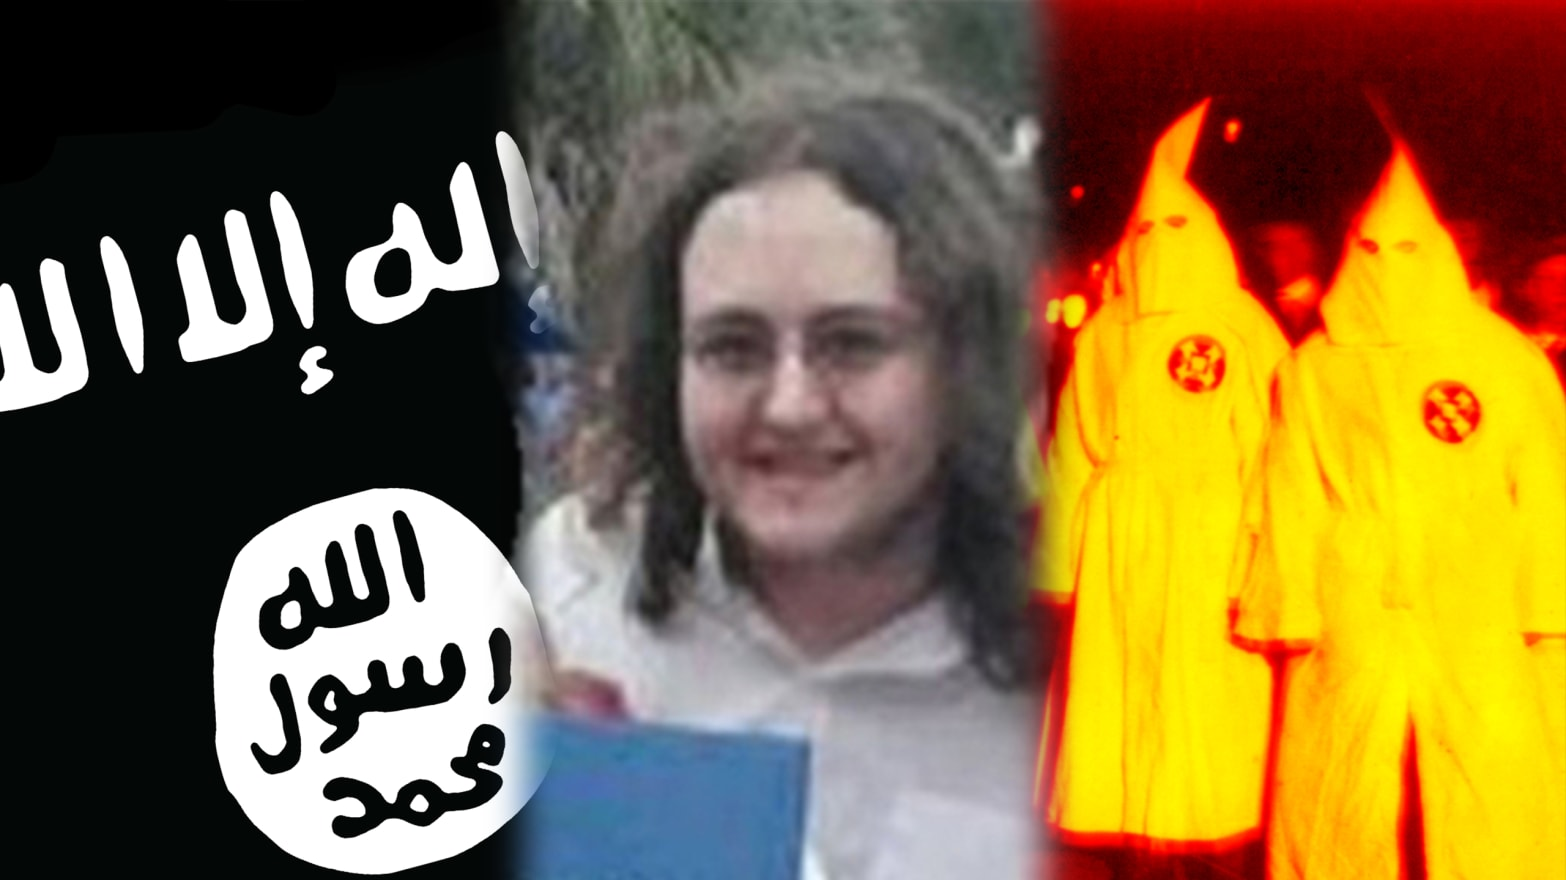 Terrorist' Troll Pretended to Be ISIS, White Supremacist, and Jewish